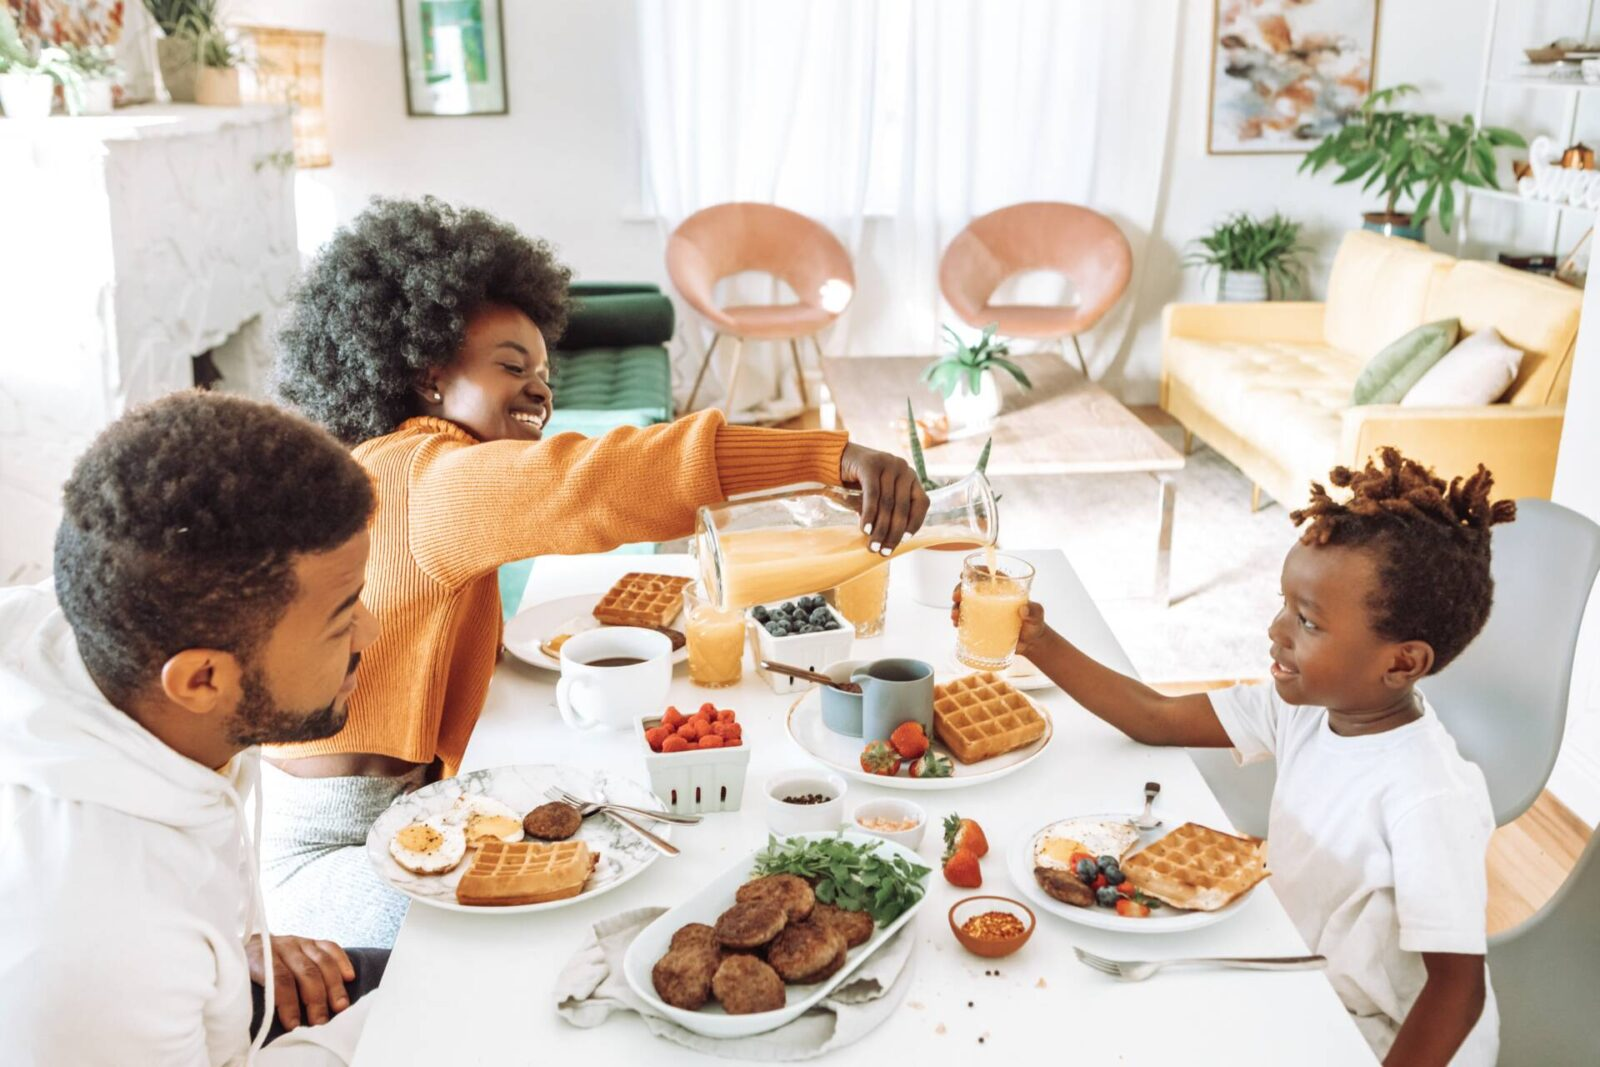 A Helpful Guide To Developing Healthy Family Habits